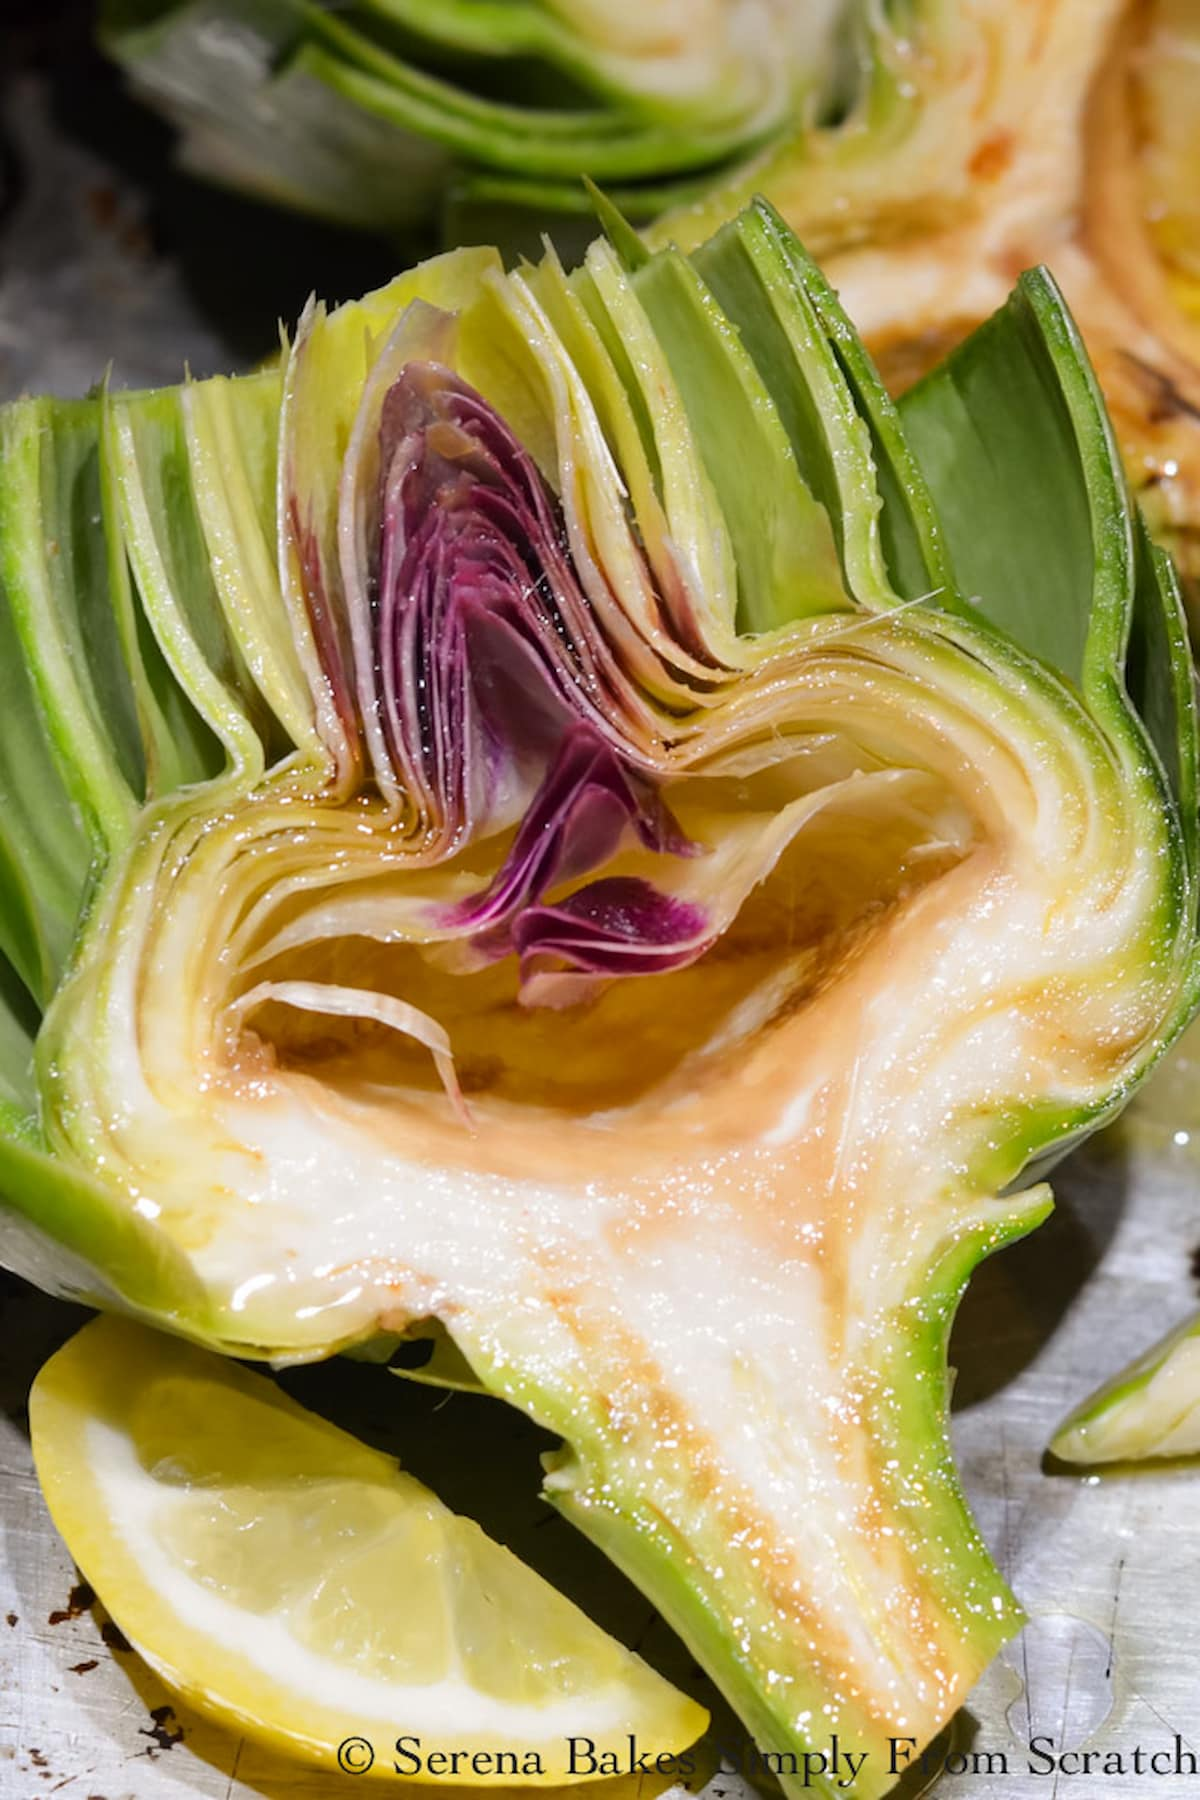 An Artichoke cut in half and trimmed up. The choke is removed from the center of the artichoke on a cookie sheet with lemon slices.